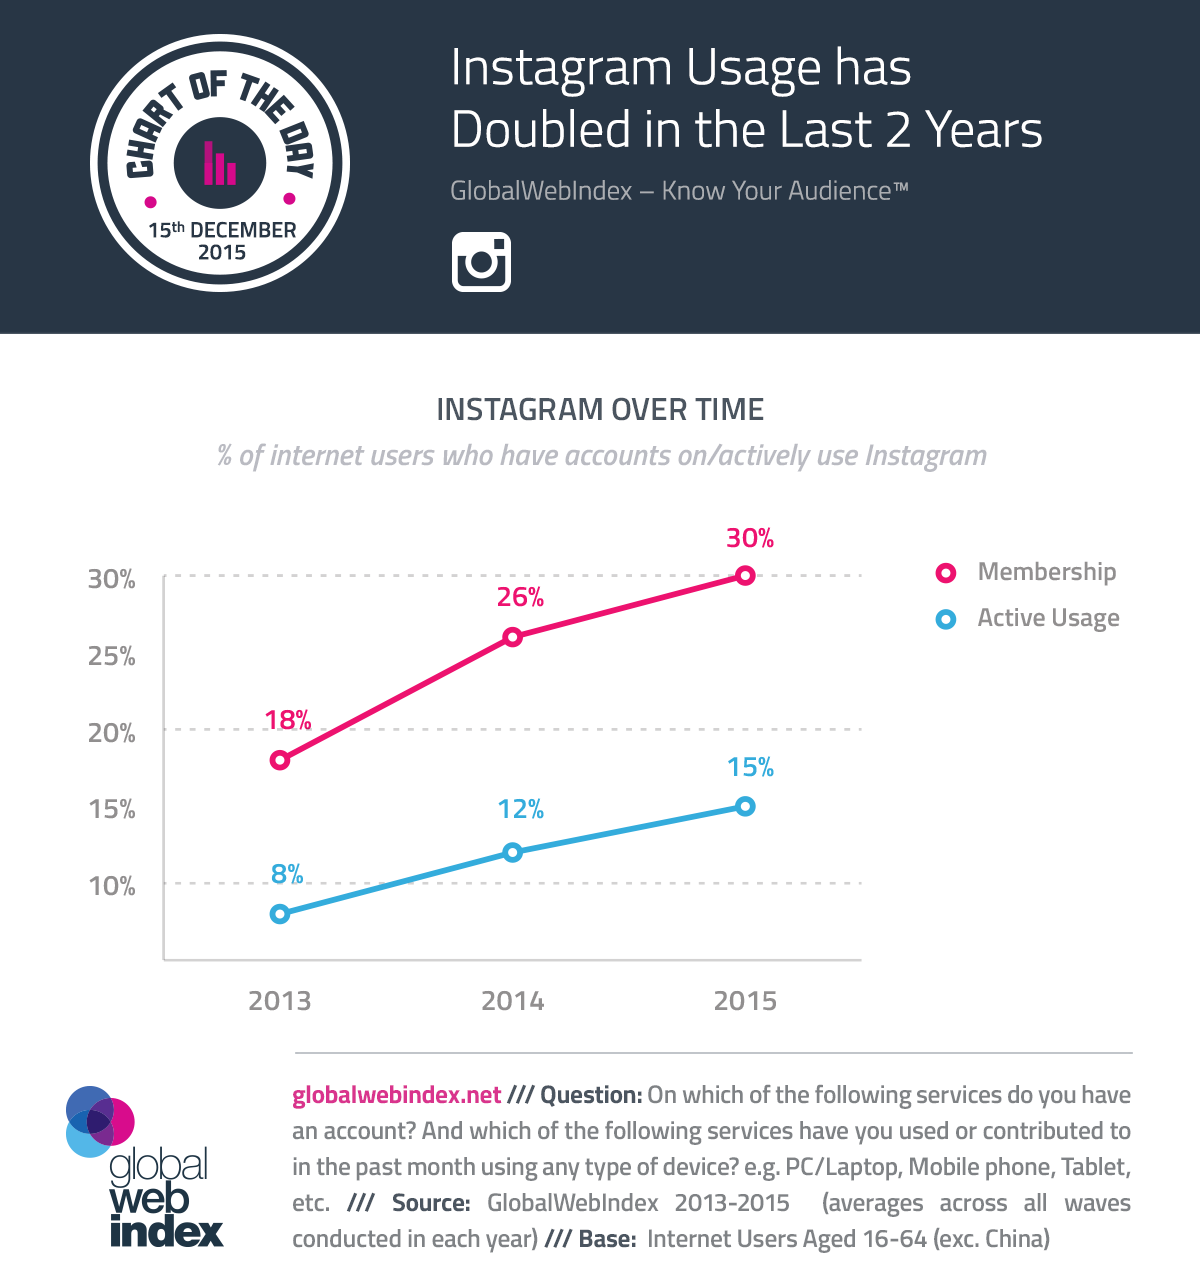 COTD-Charts-15-Dec-2015-Instagram-Usage-has-Doubled-in-the-Last-2-Years.png